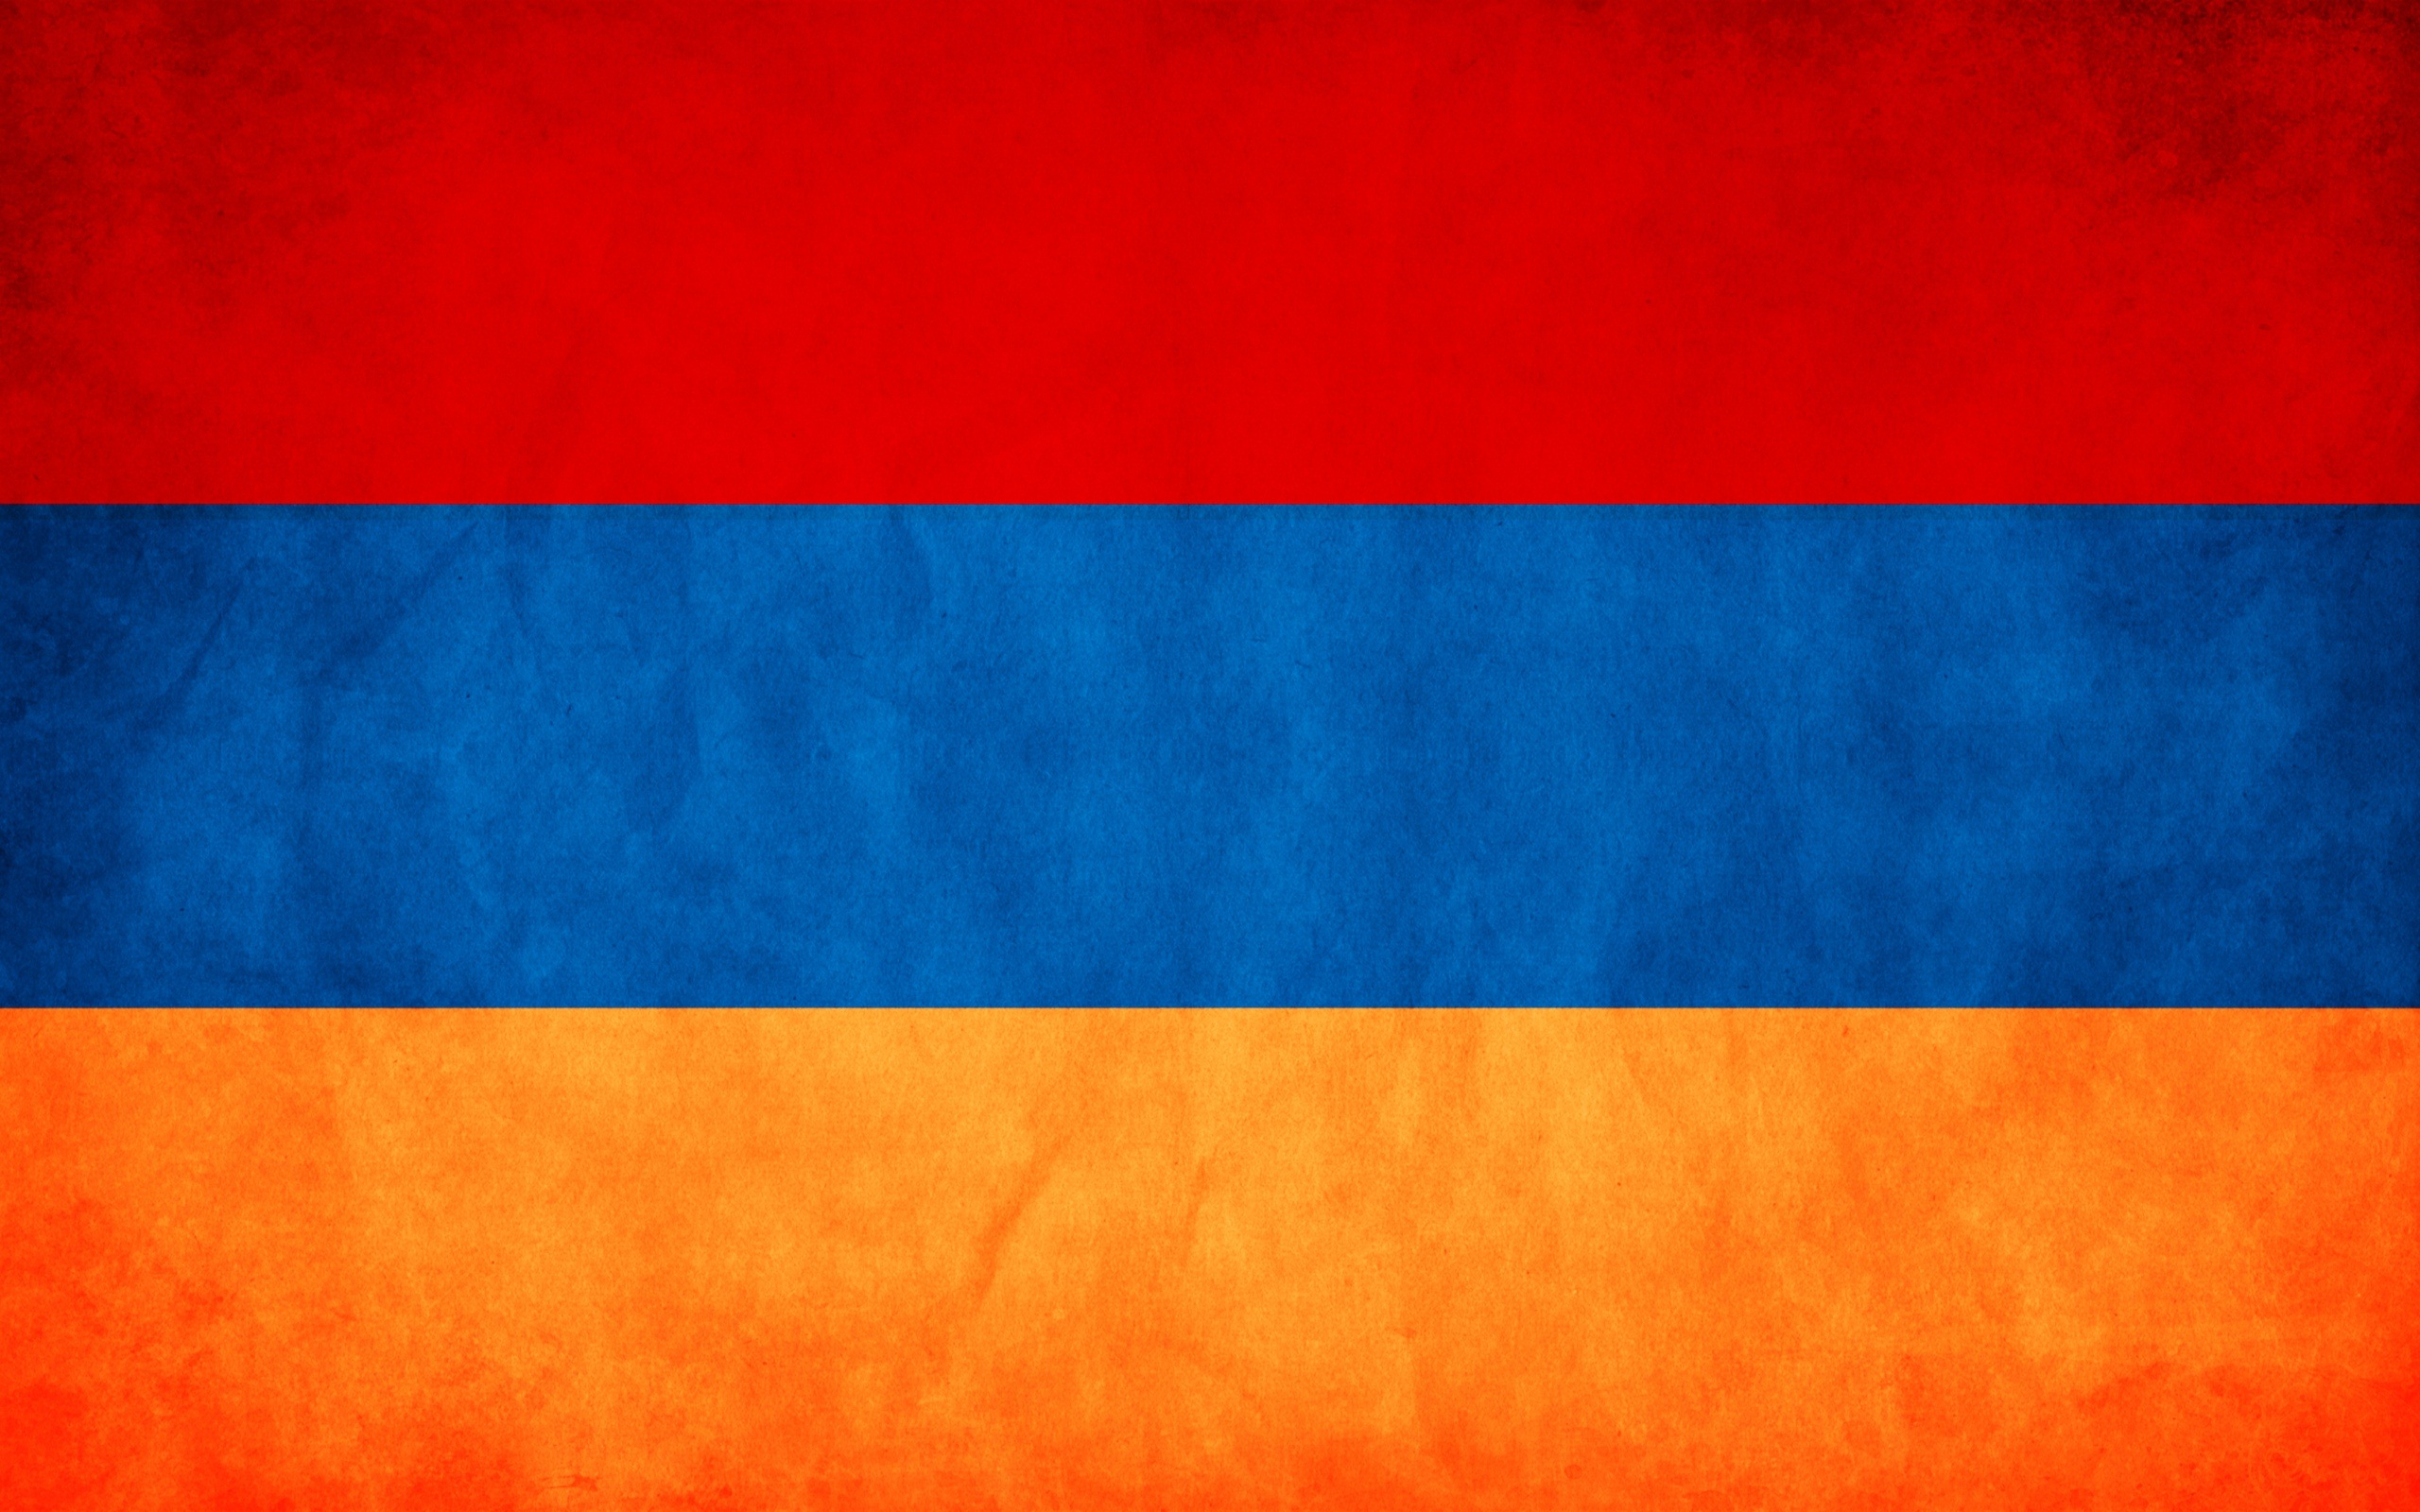 File:Flag of Armenia.svg Wikimedia Commons